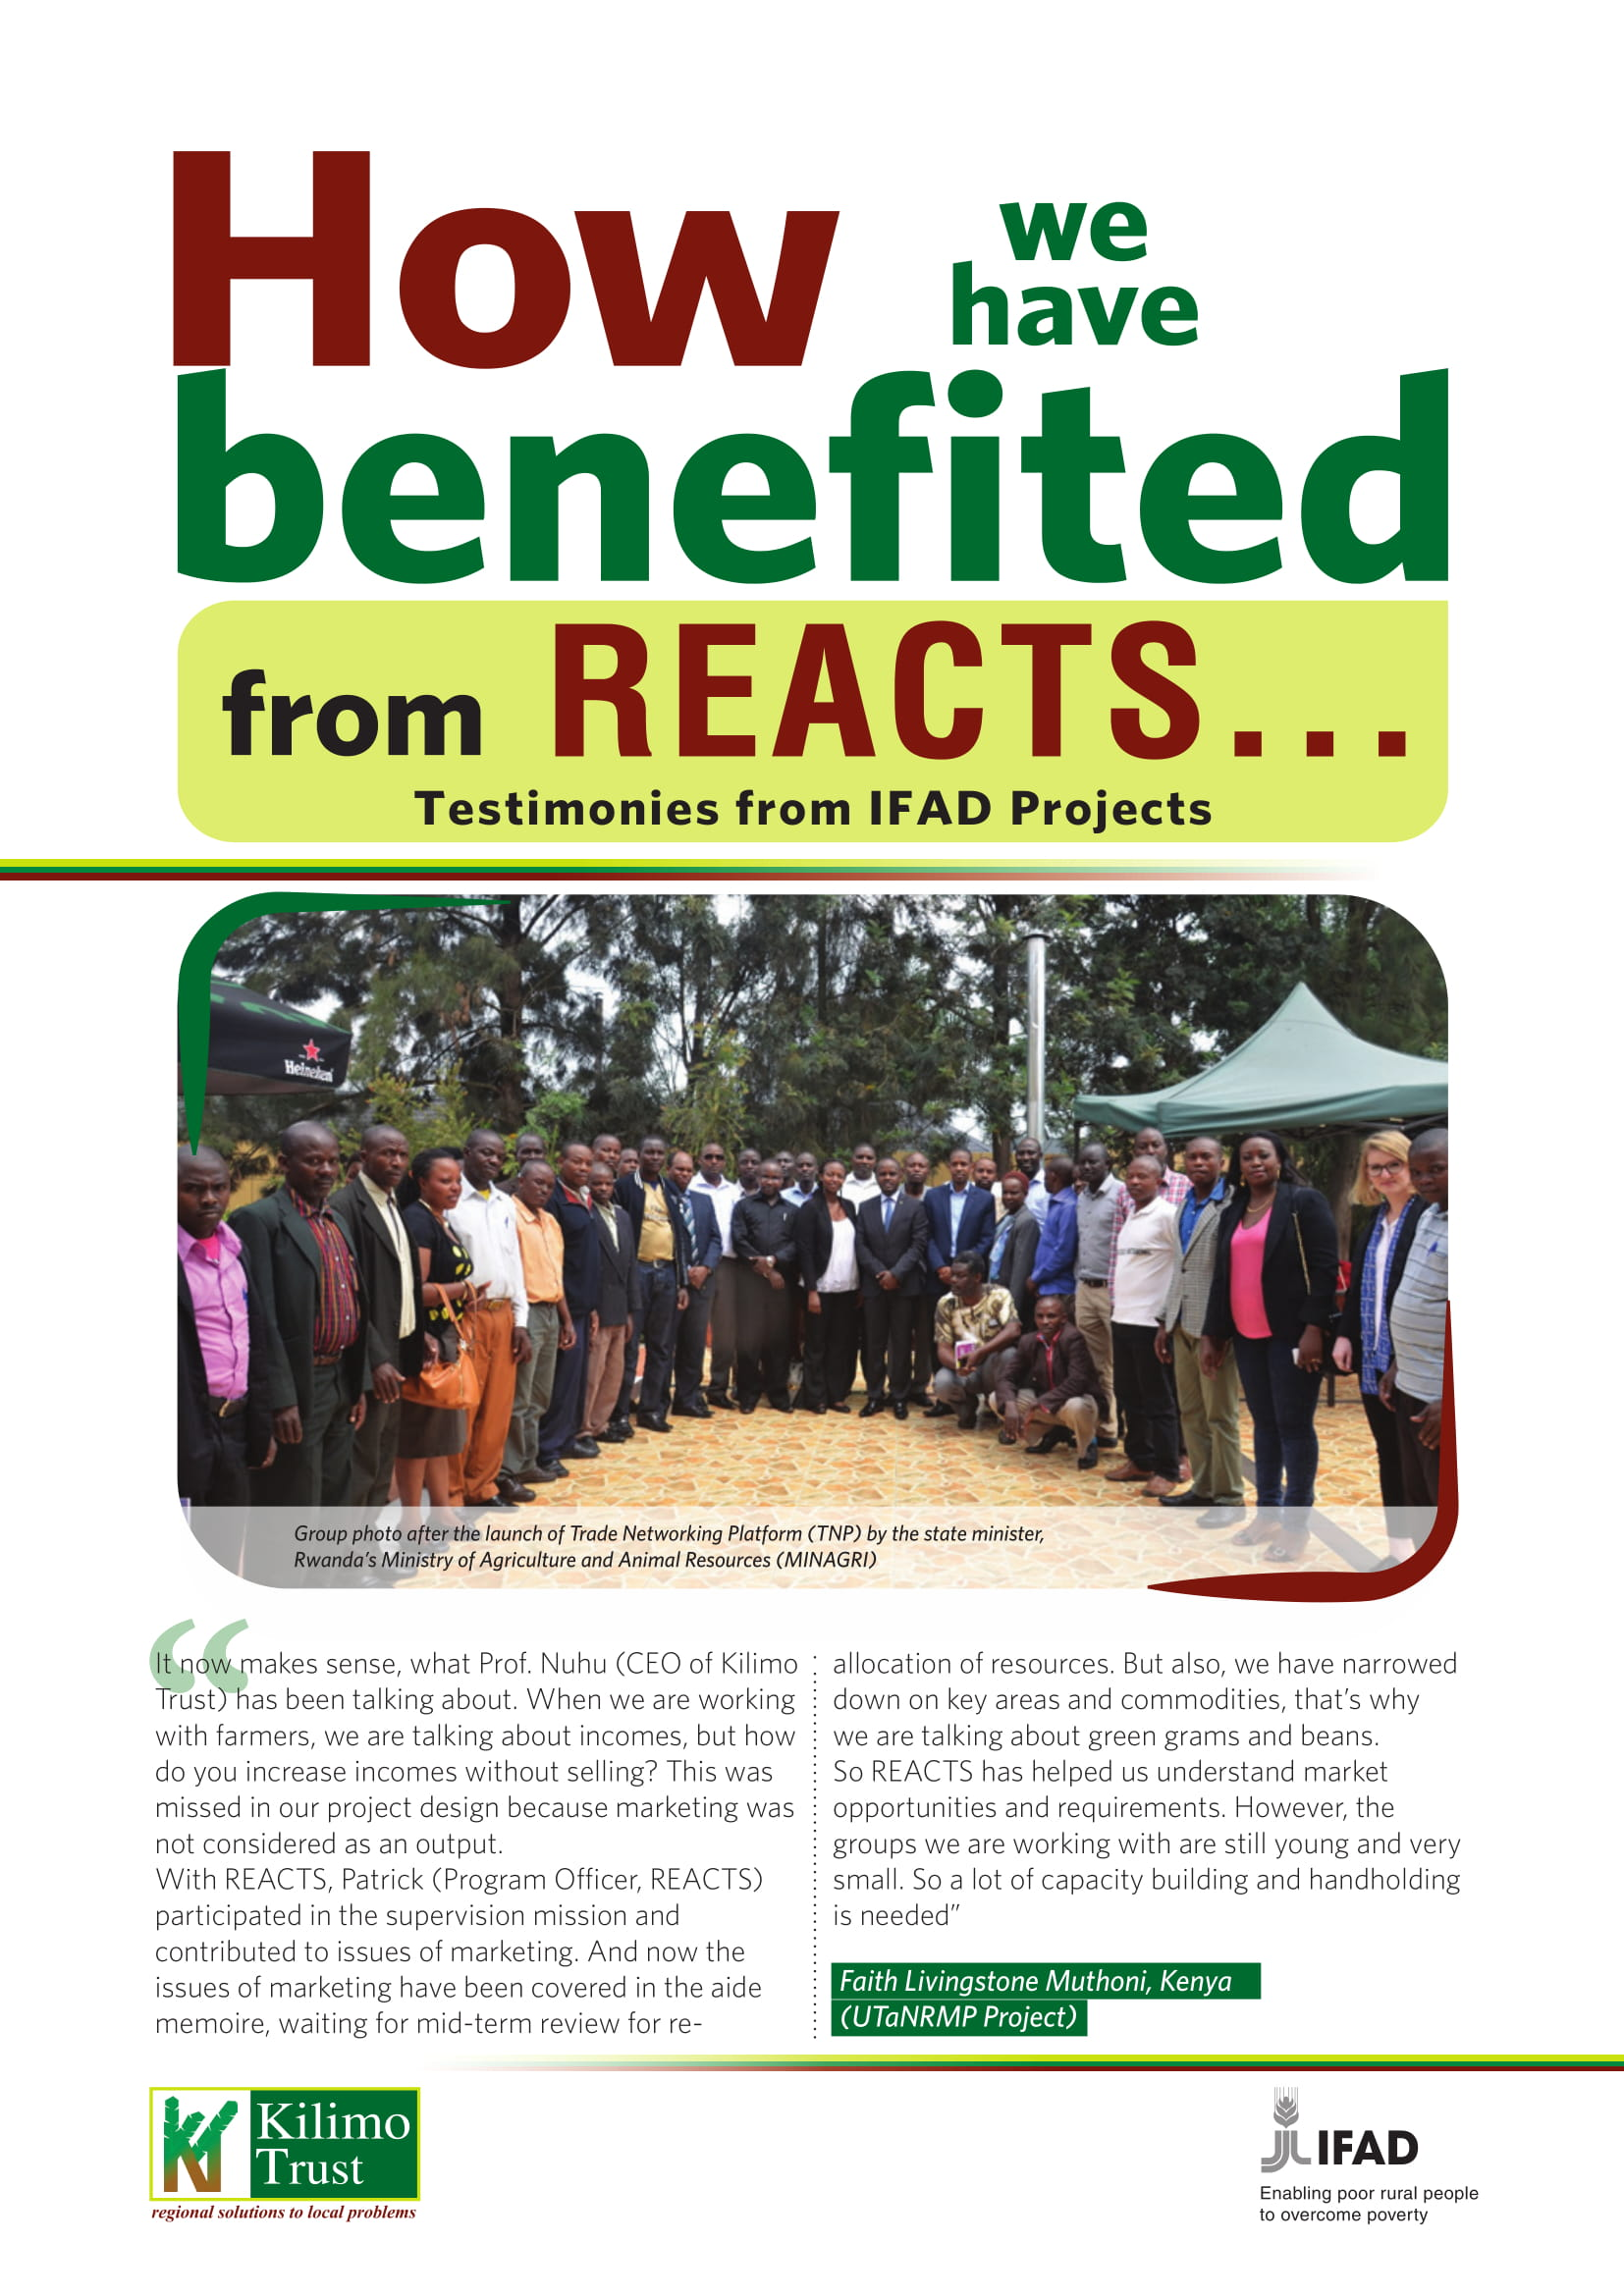 reacts testimonies from ifad projects 1